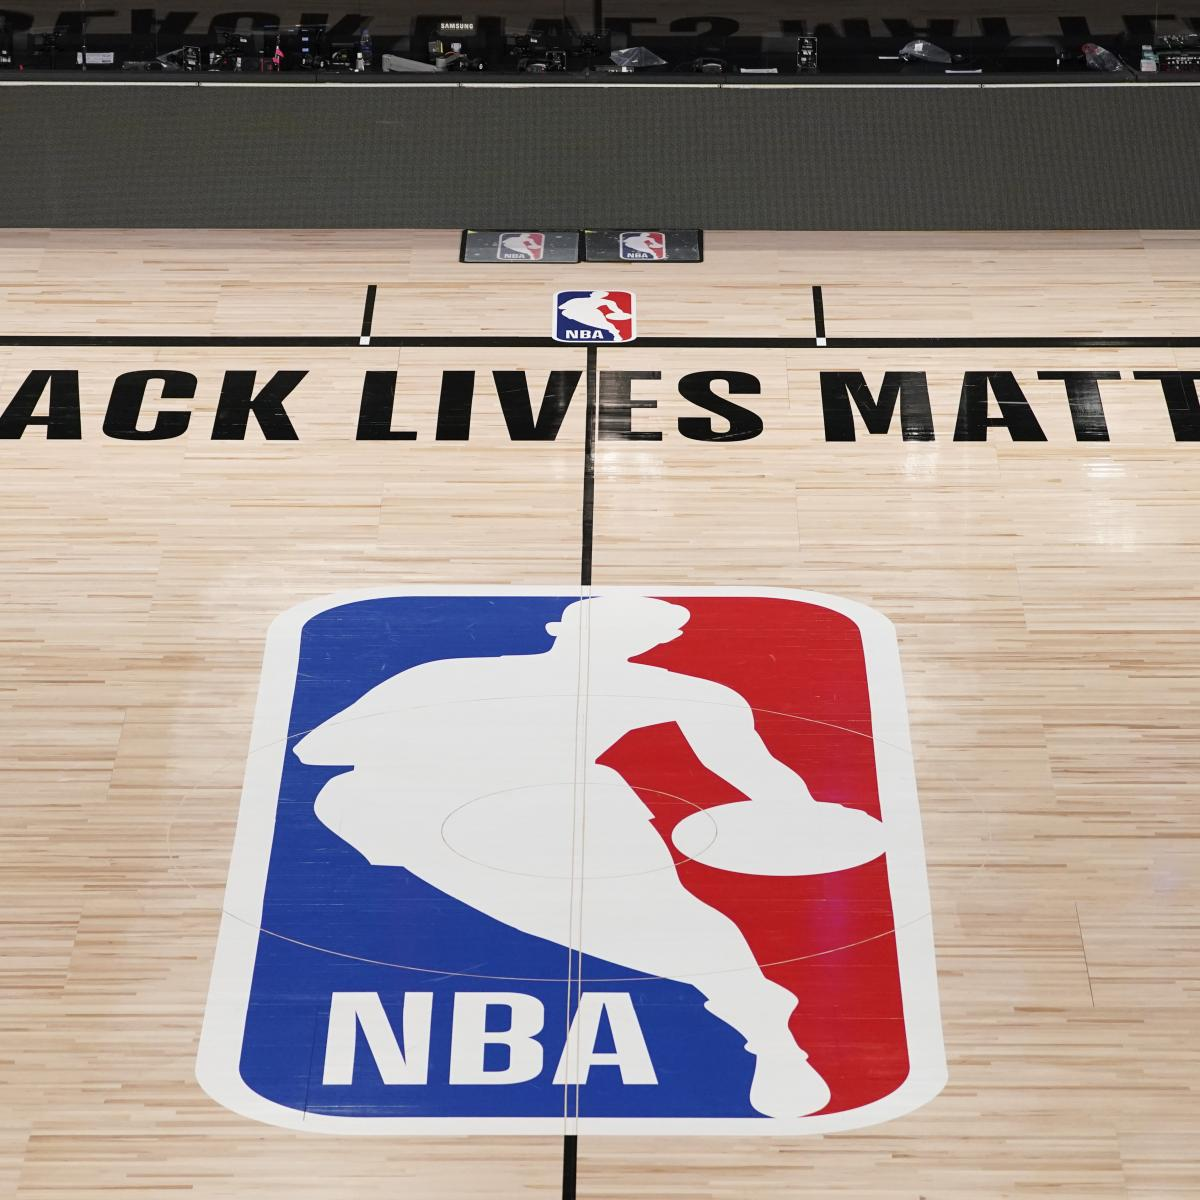 2021 NBA All-Star Events to Generate $3M in Donations for HBCUs, Communities